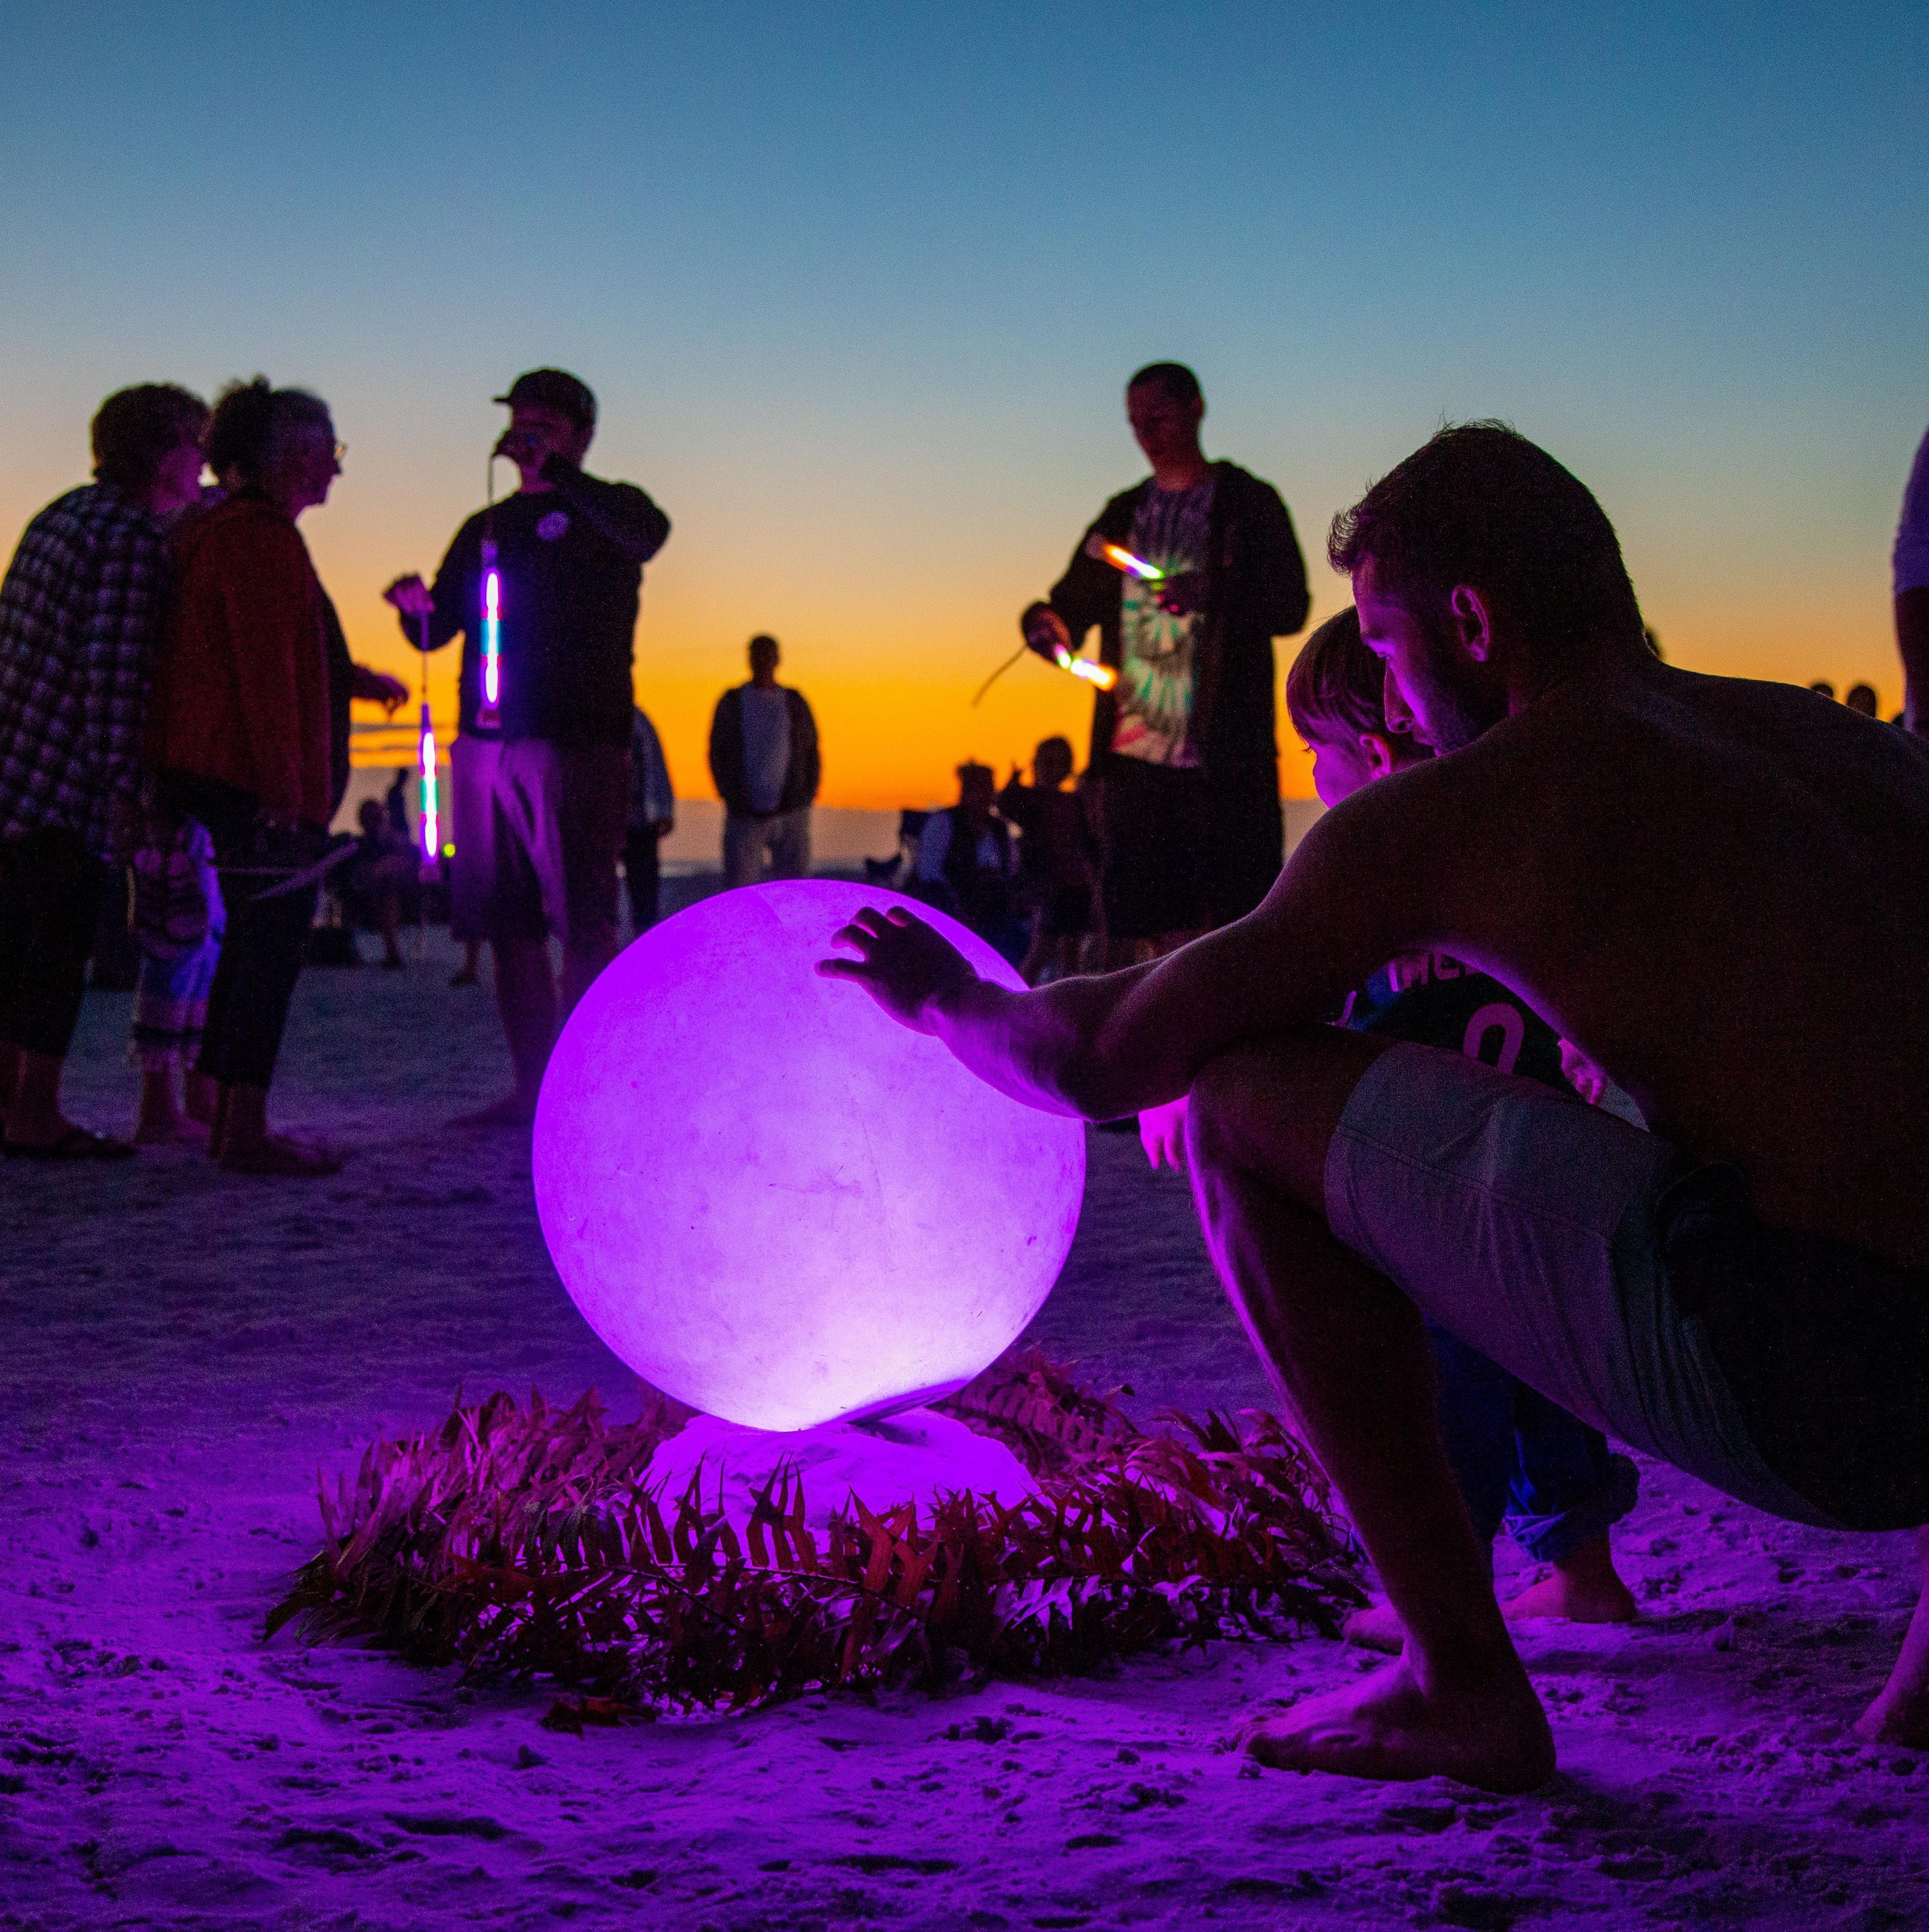 Enter a vibrant new world with siesta key drum circle